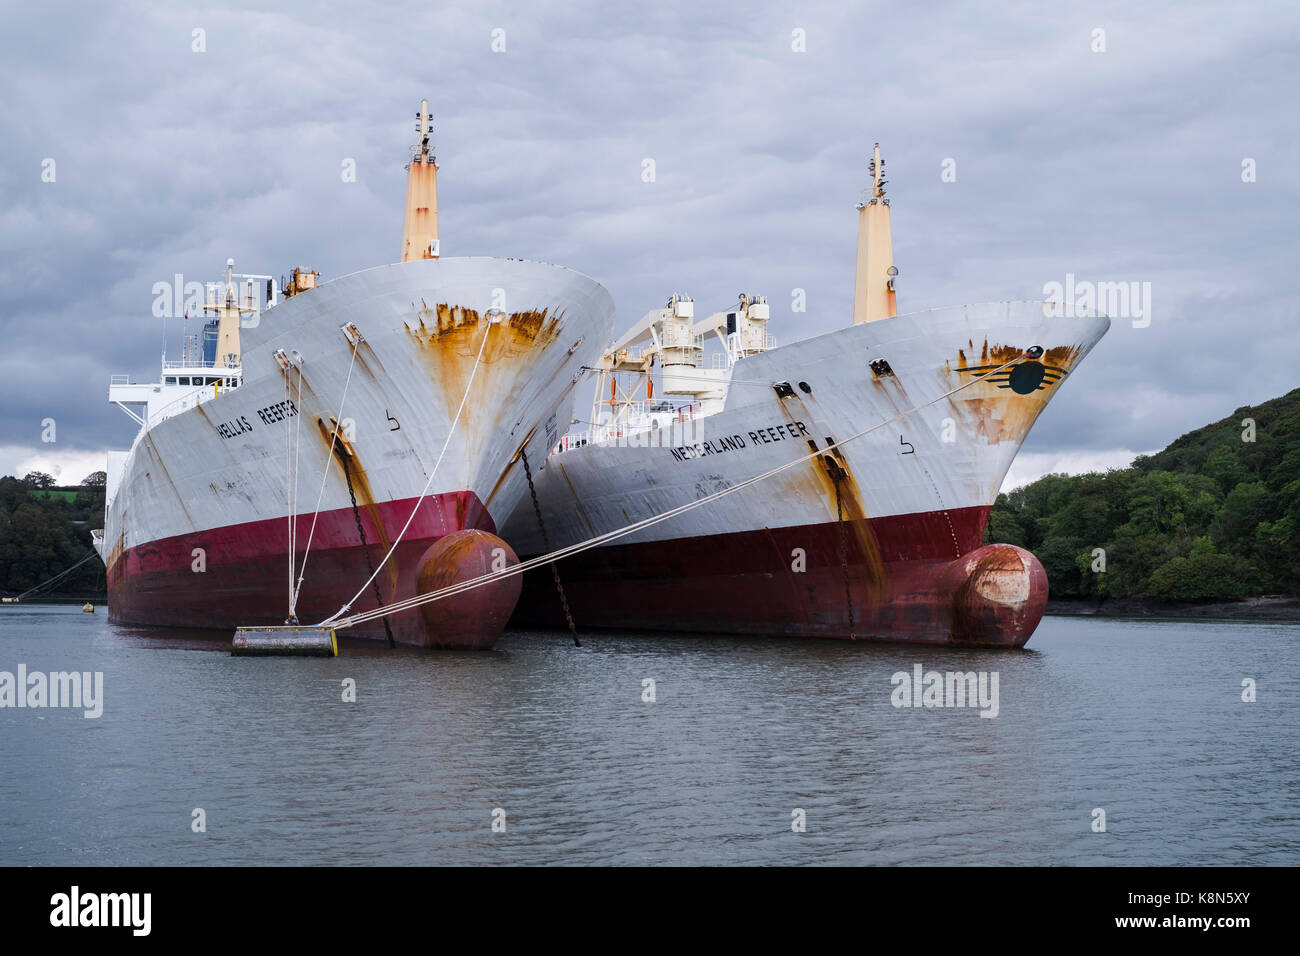 Reefer ships, refrigerated cargo ships used to transport perishable goods, laid up up in the Fal River, Falmouth, Stock Photo